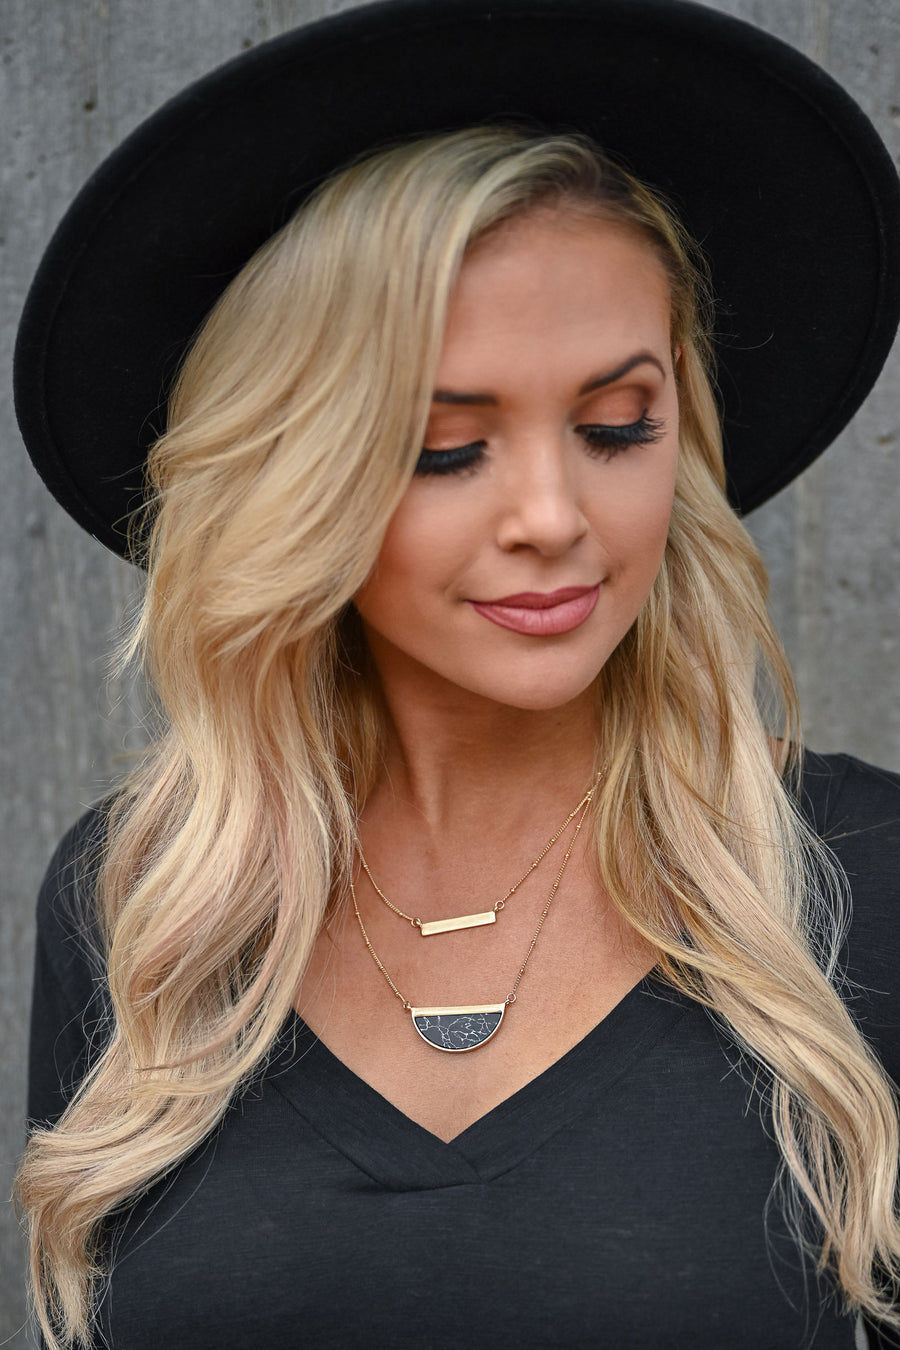 Keep Shining Layered Necklace - Black Marble womens trendy layered necklace gold closet candy front